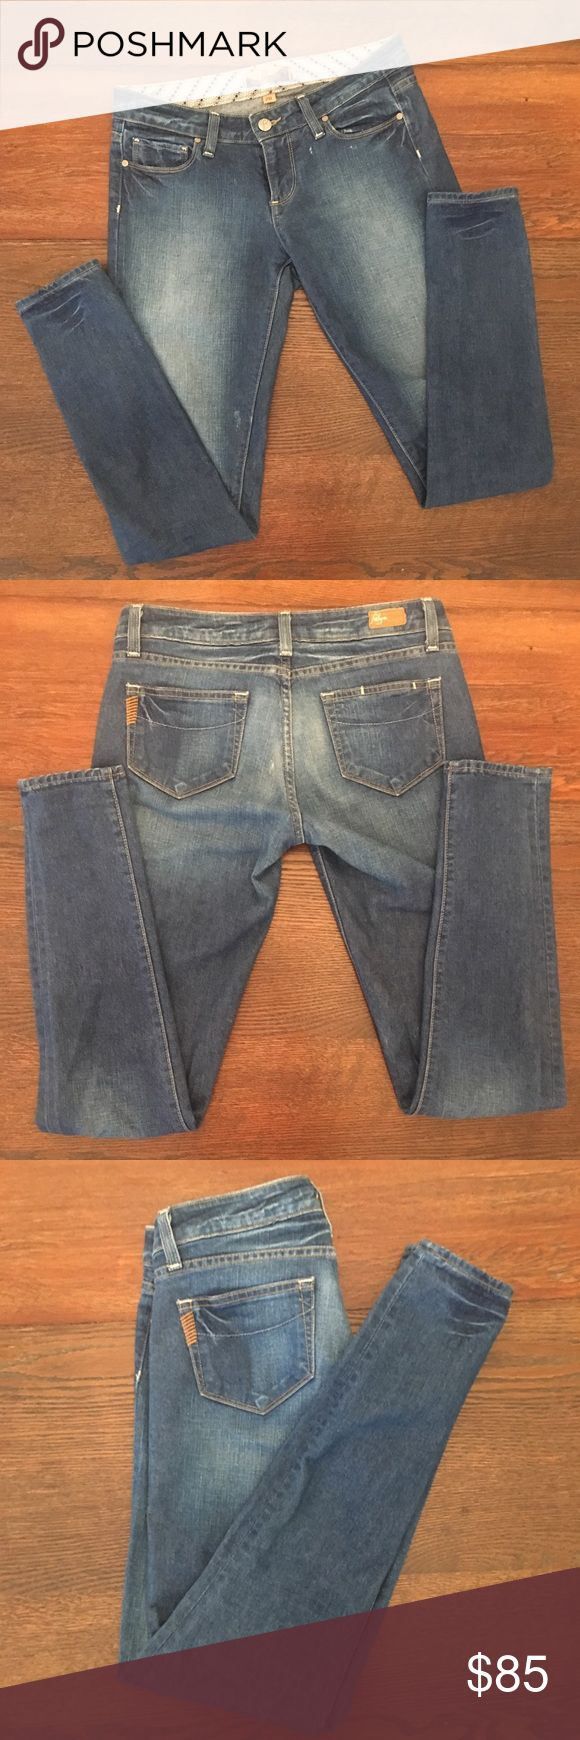 """Paige Premium Denim Jeans Paige Premium Denim Jeans, size 26.  Inseam is about 30.25"""", 5"""" across bottom of cuff, 15.5"""" across top of waist laying flat.  There are distressed marking throughout, they came like this.  Super skinny, and not much stretch.  No trades or modeling.  Bundle to save. Paige Jeans Jeans Skinny"""